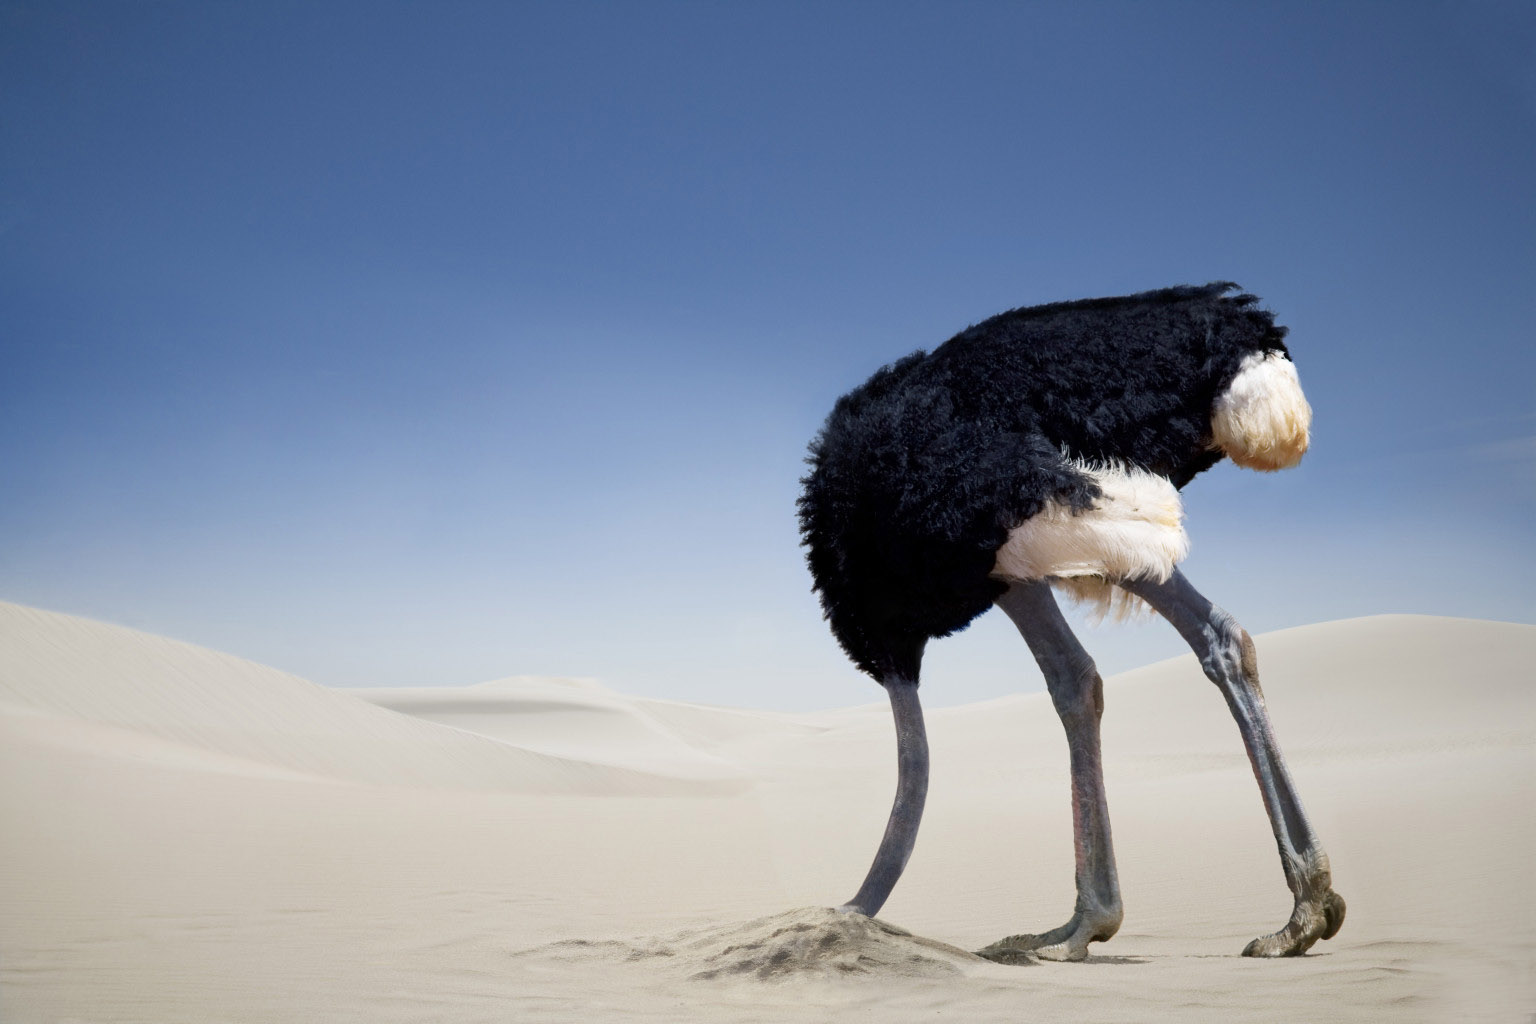 http://www.pre-tend.com/wp-content/uploads/2015/02/ostrich-head-in-sand-Ostriches-not-stick-its-head-in-the-sand-when-in-danger.jpg